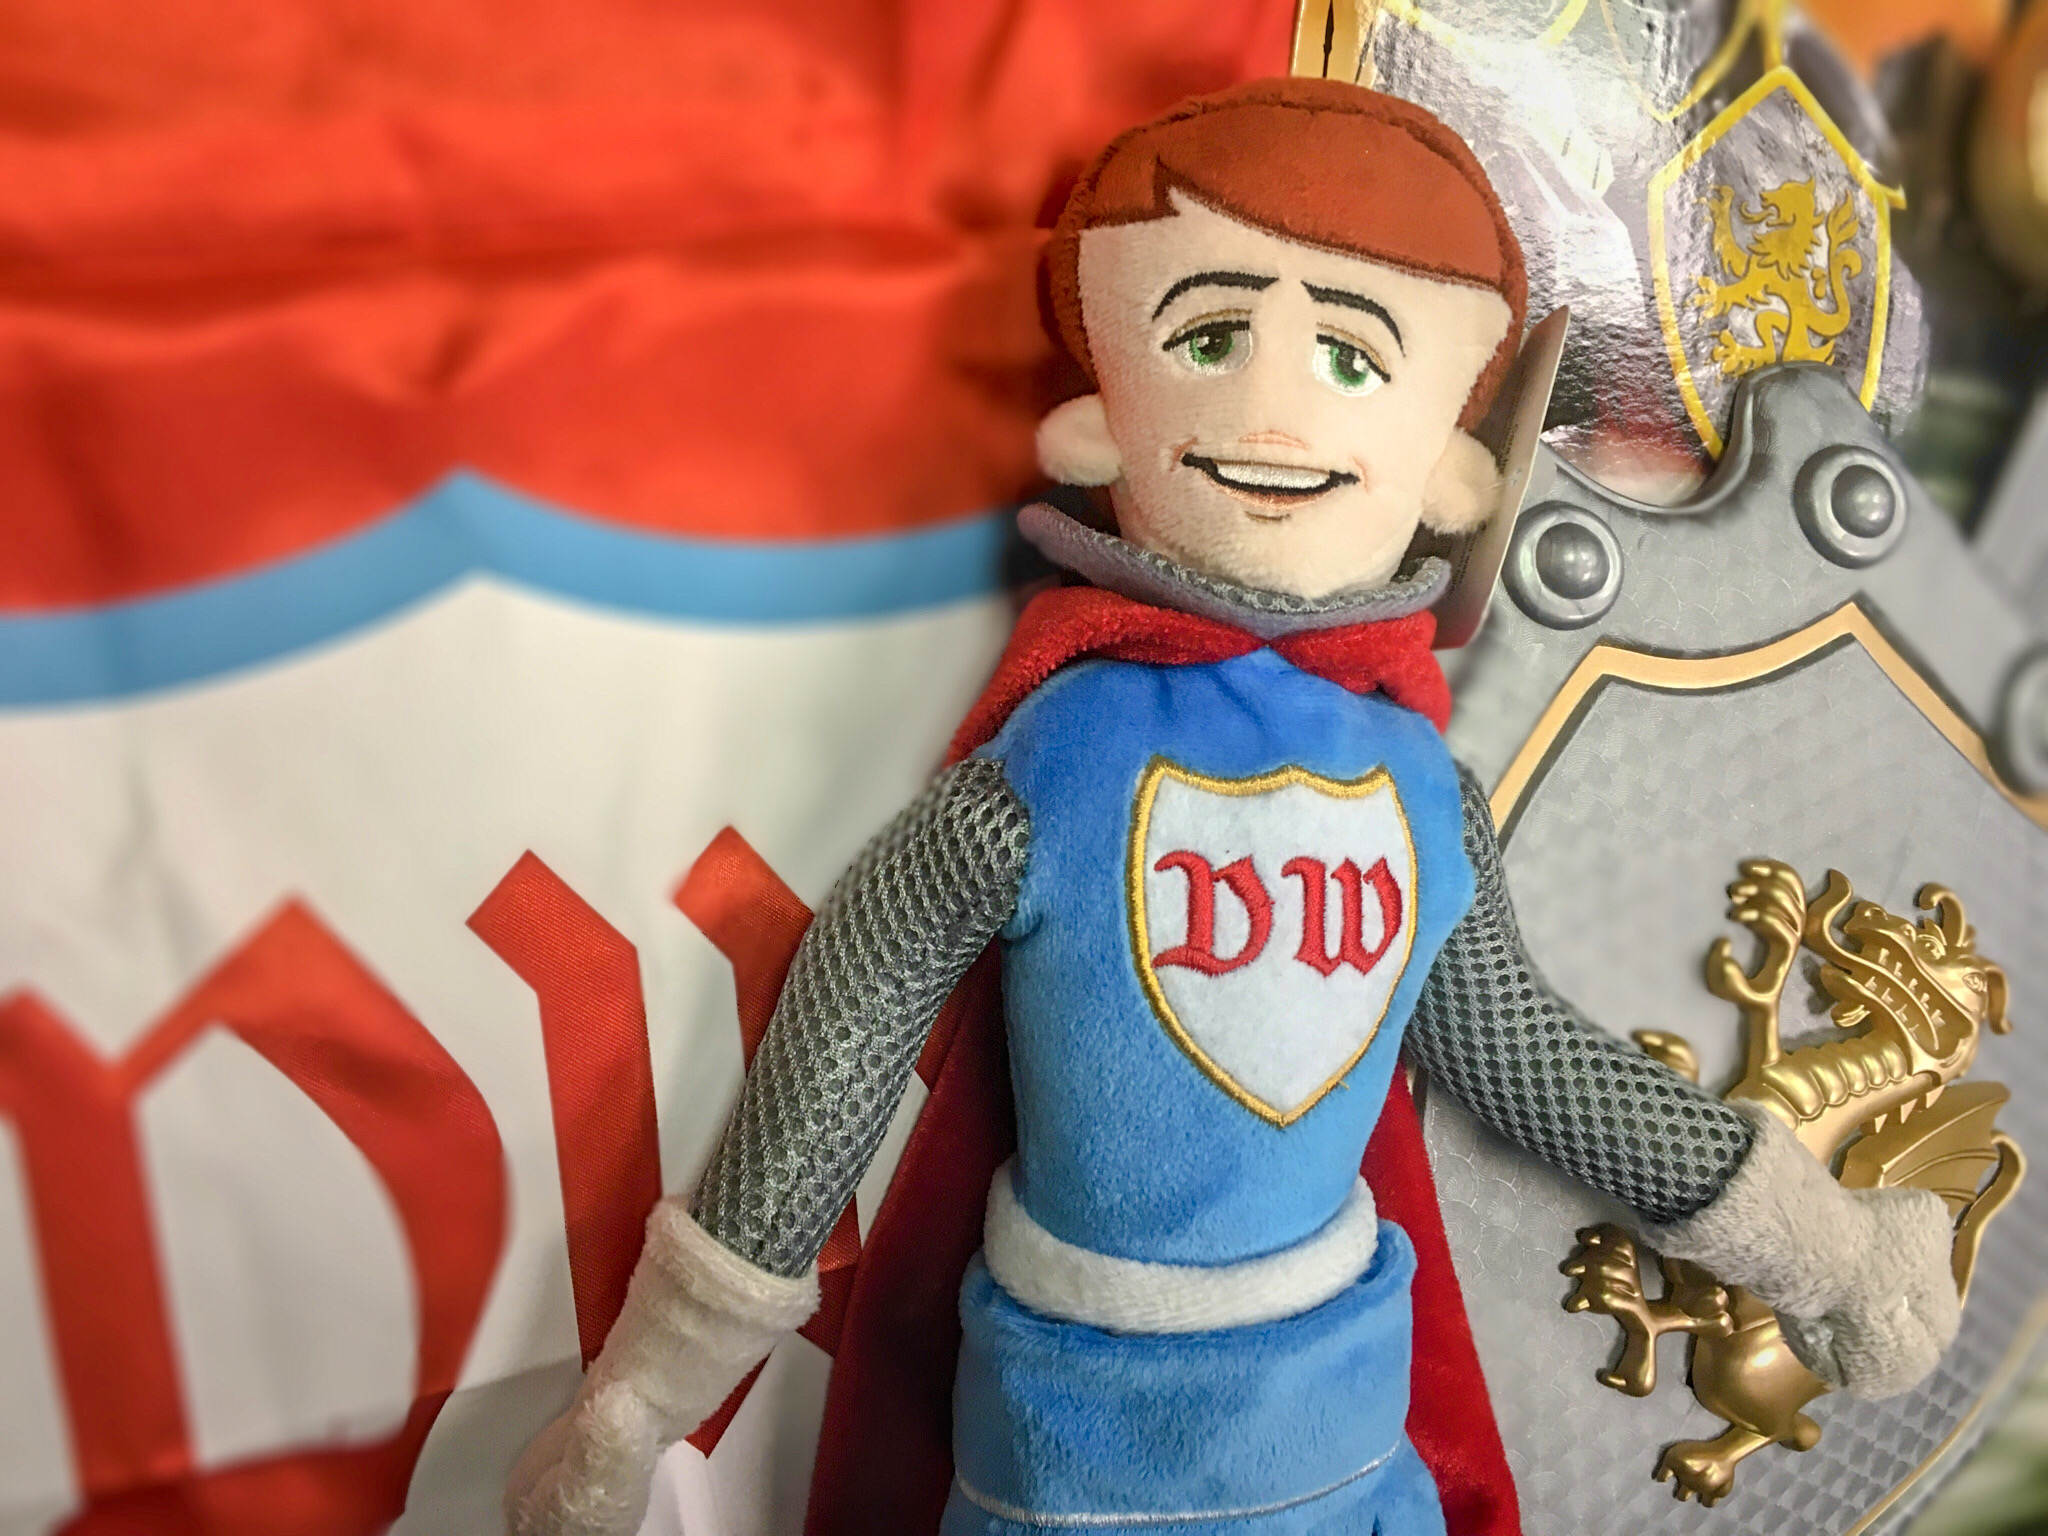 DW Knight plush toy with cape and shield toys